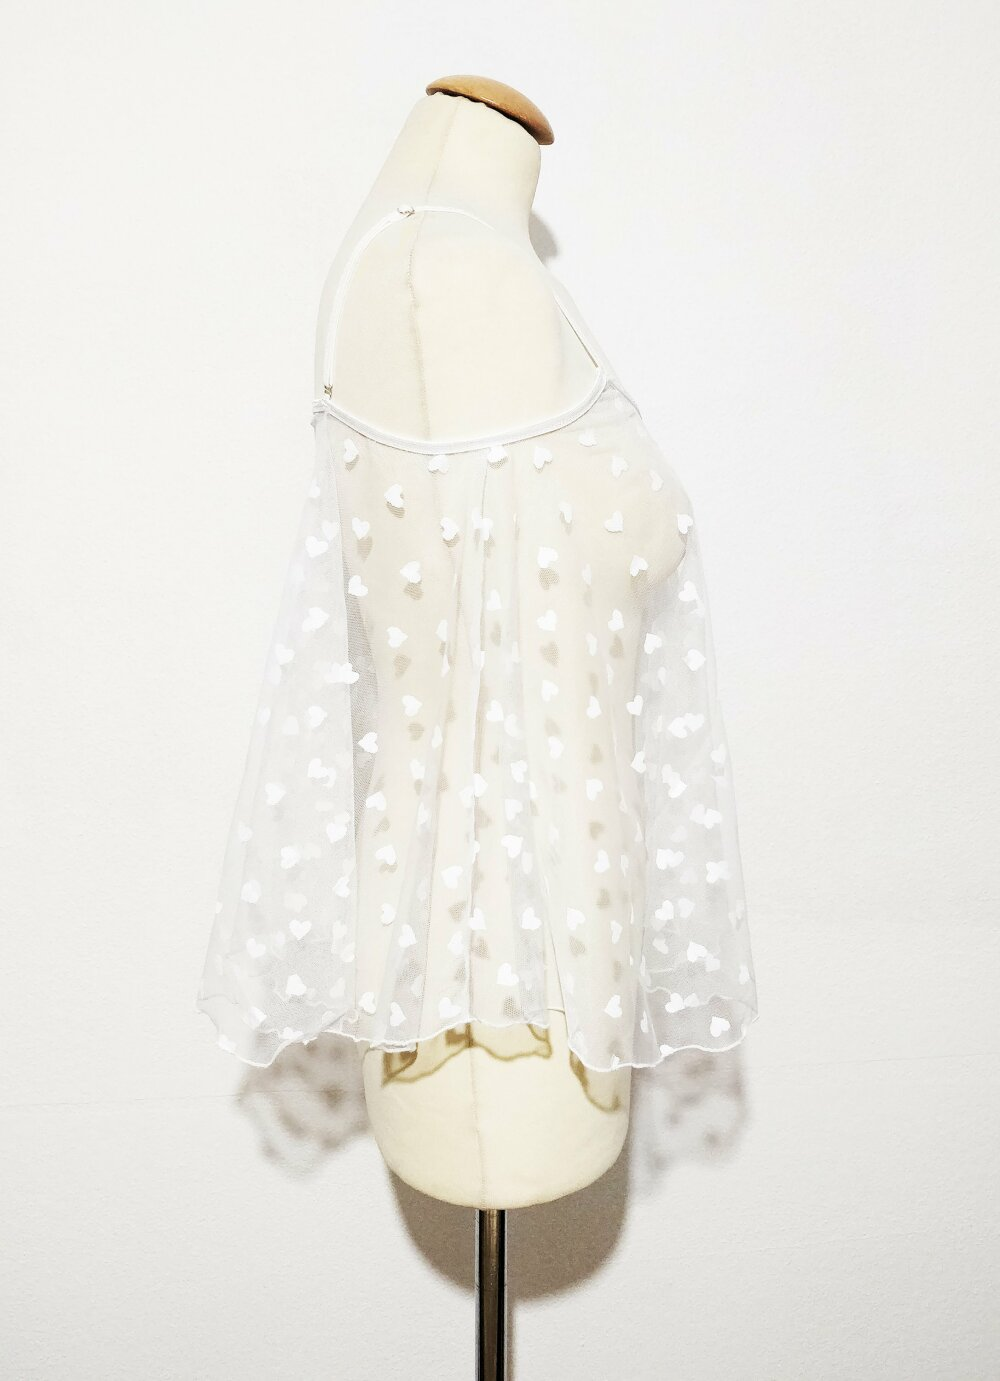 NOUVEAU Ensemble babydoll et culotte blanc transparent Little heart